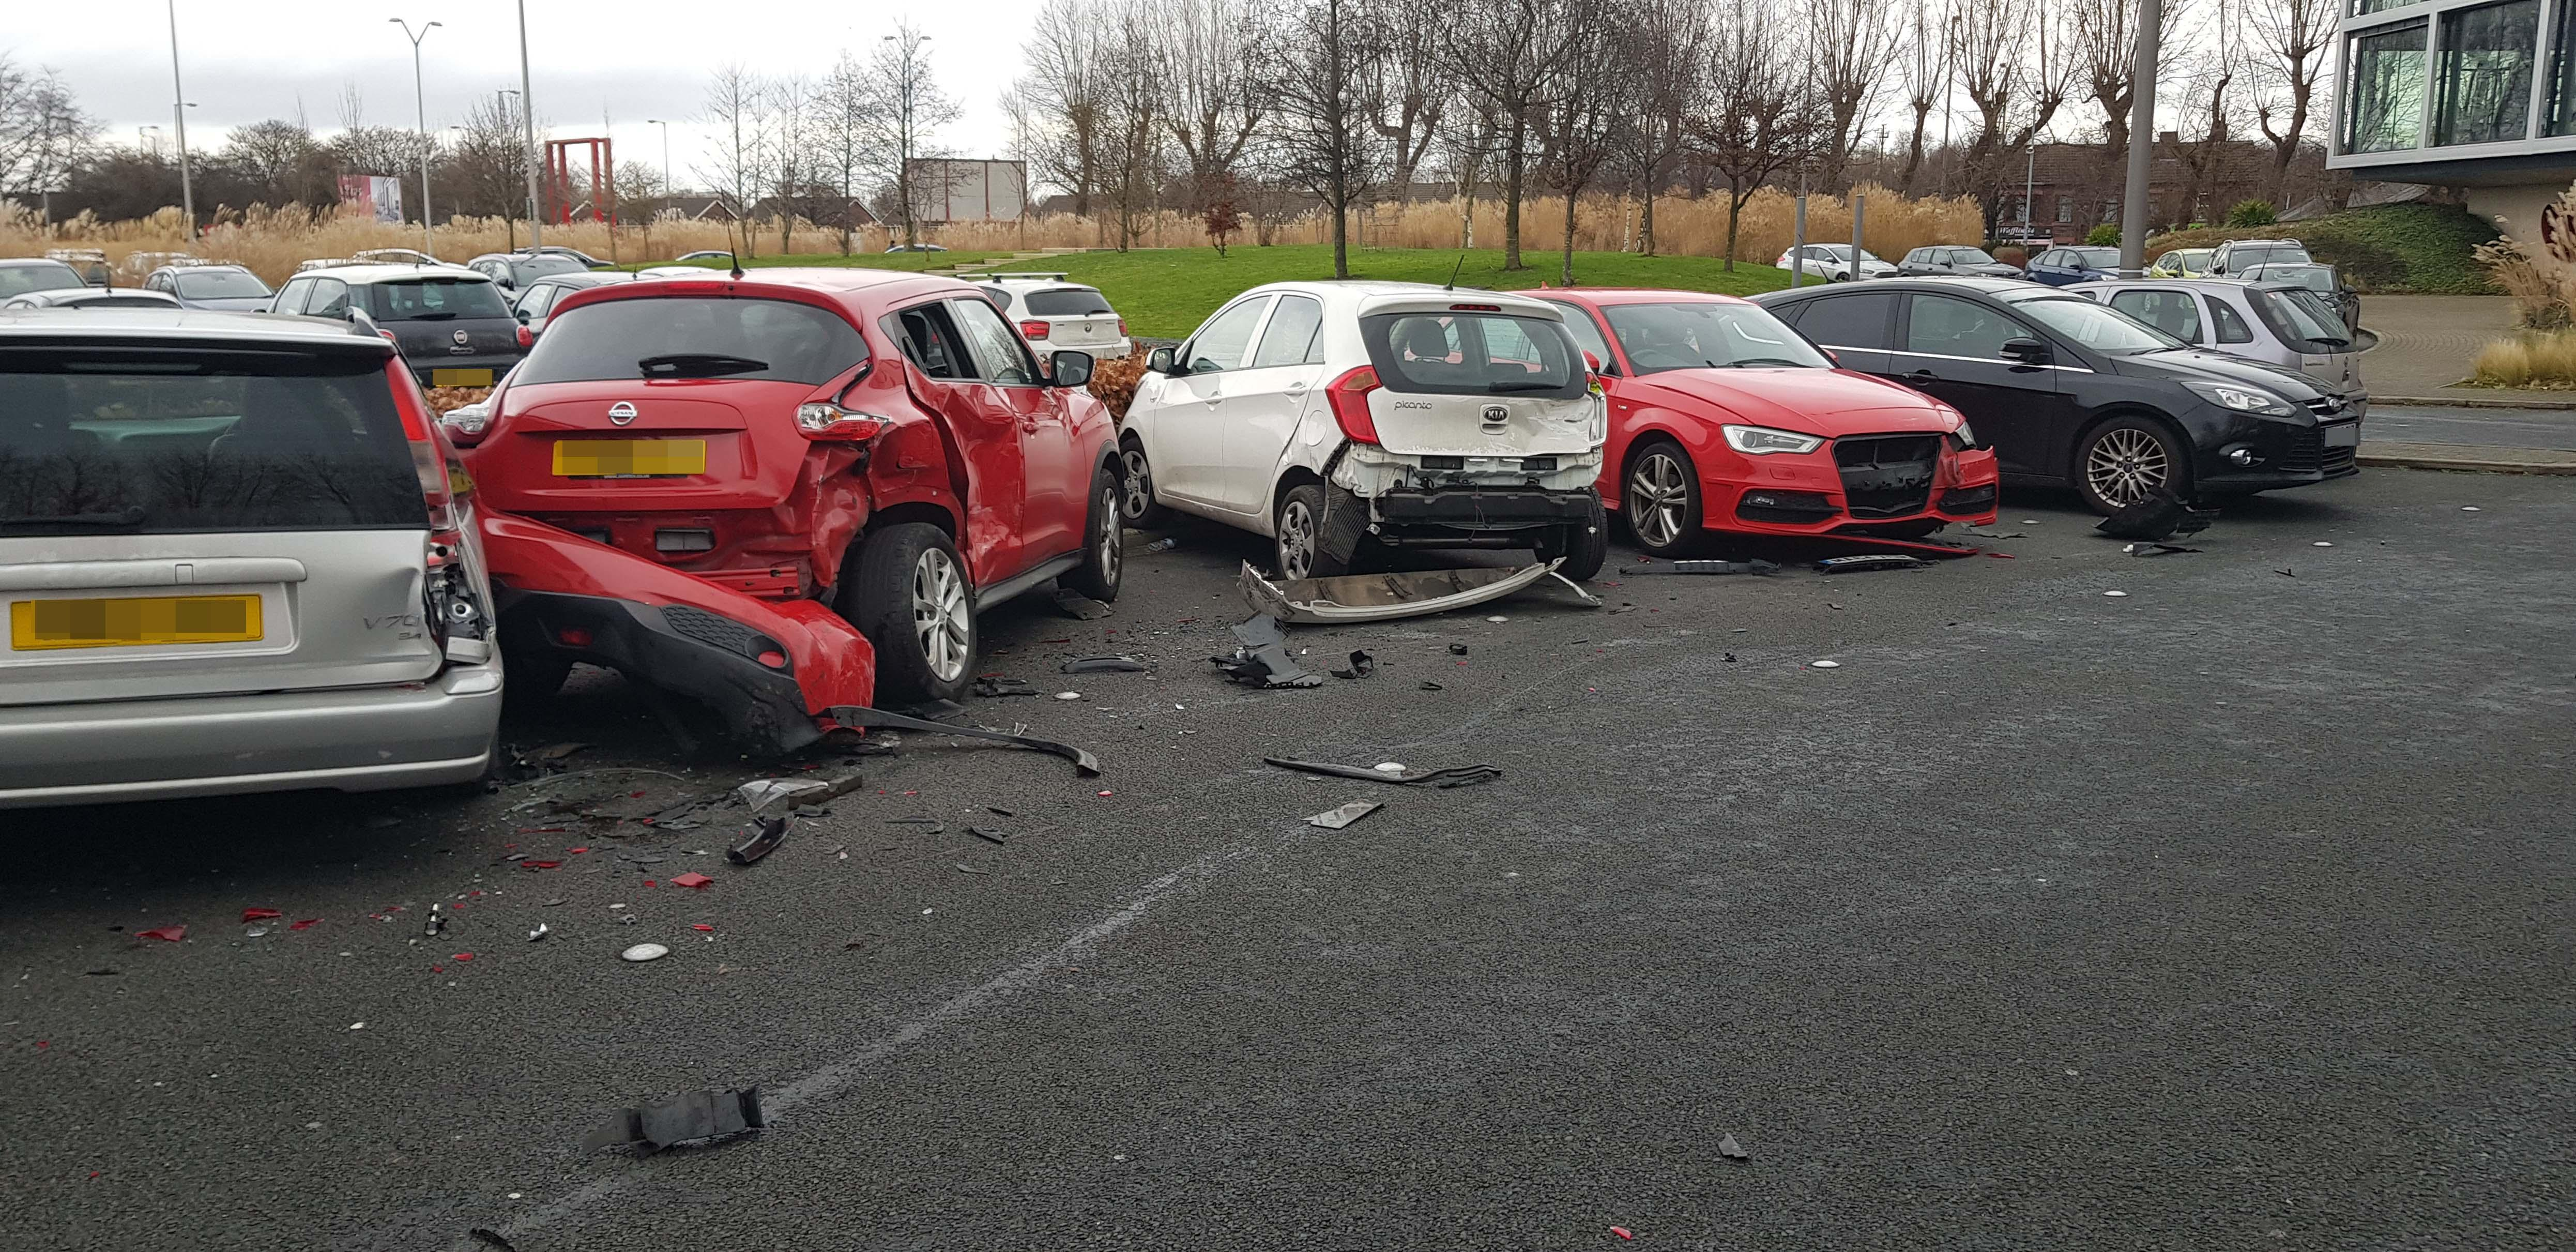 Range Rover driver ploughs into four parked cars after losing control while leaving the gym